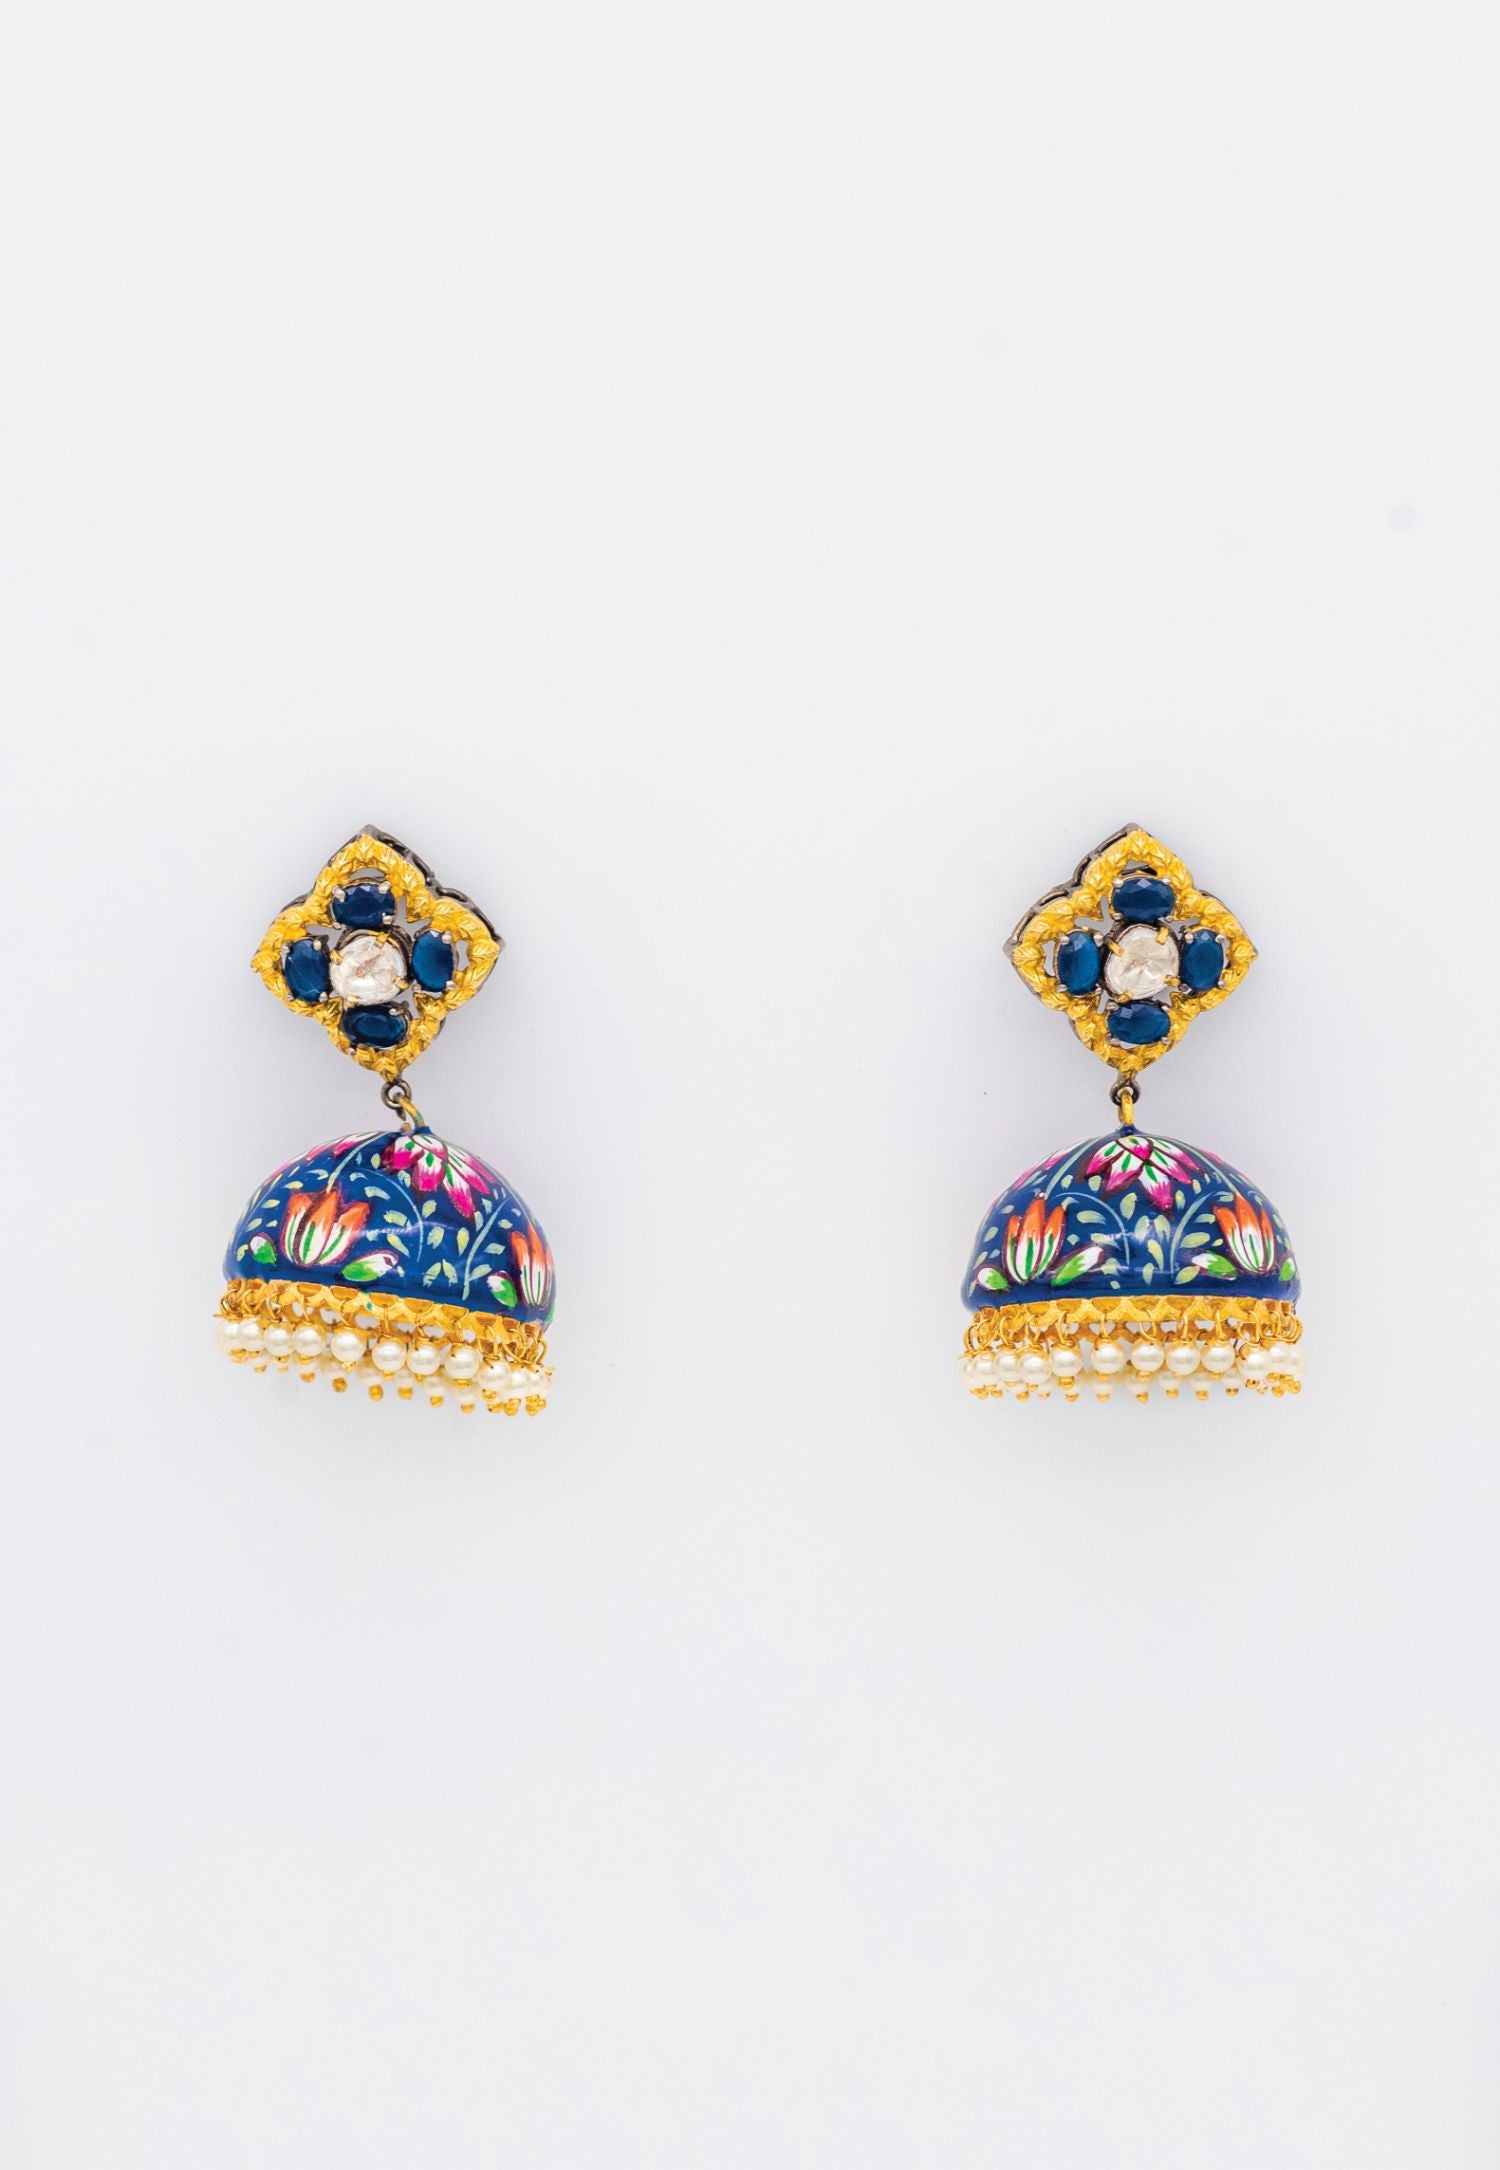 BLUE, PINK GOLD AND PEARL EMBELLISHED JHUMKA EARRINGS